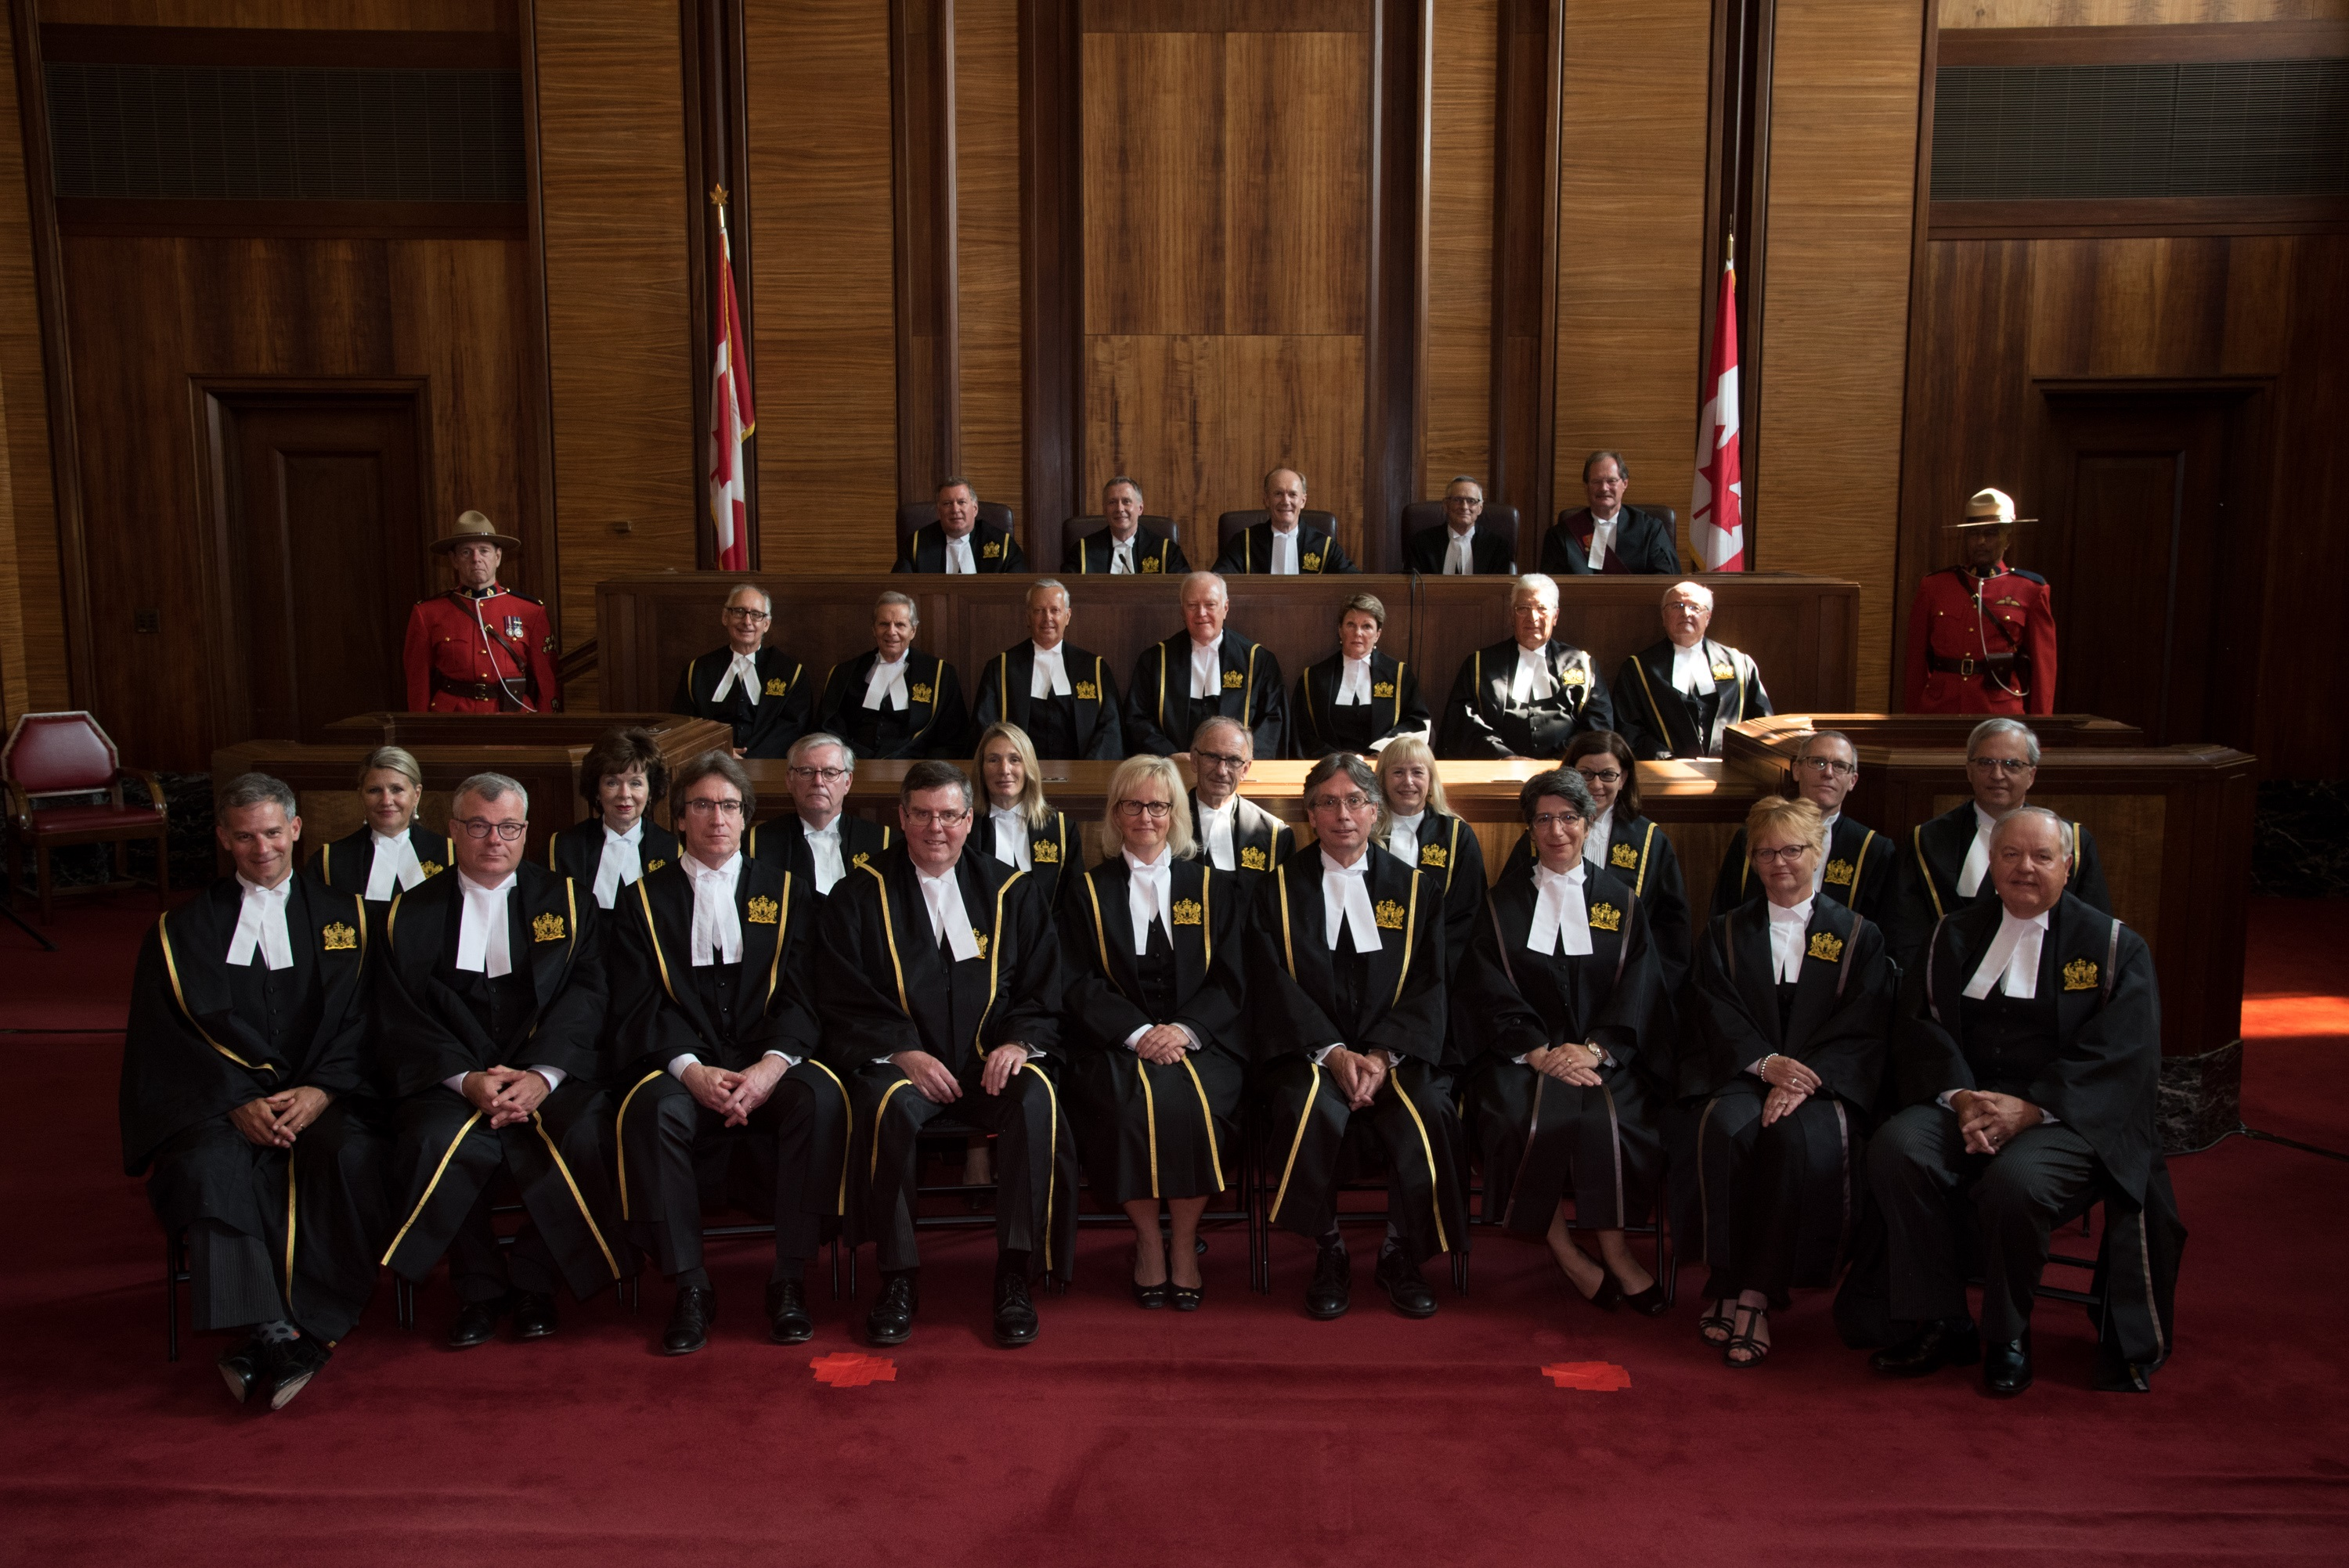 Swearing-In Ceremony, (Ottawa) June 14, 2013